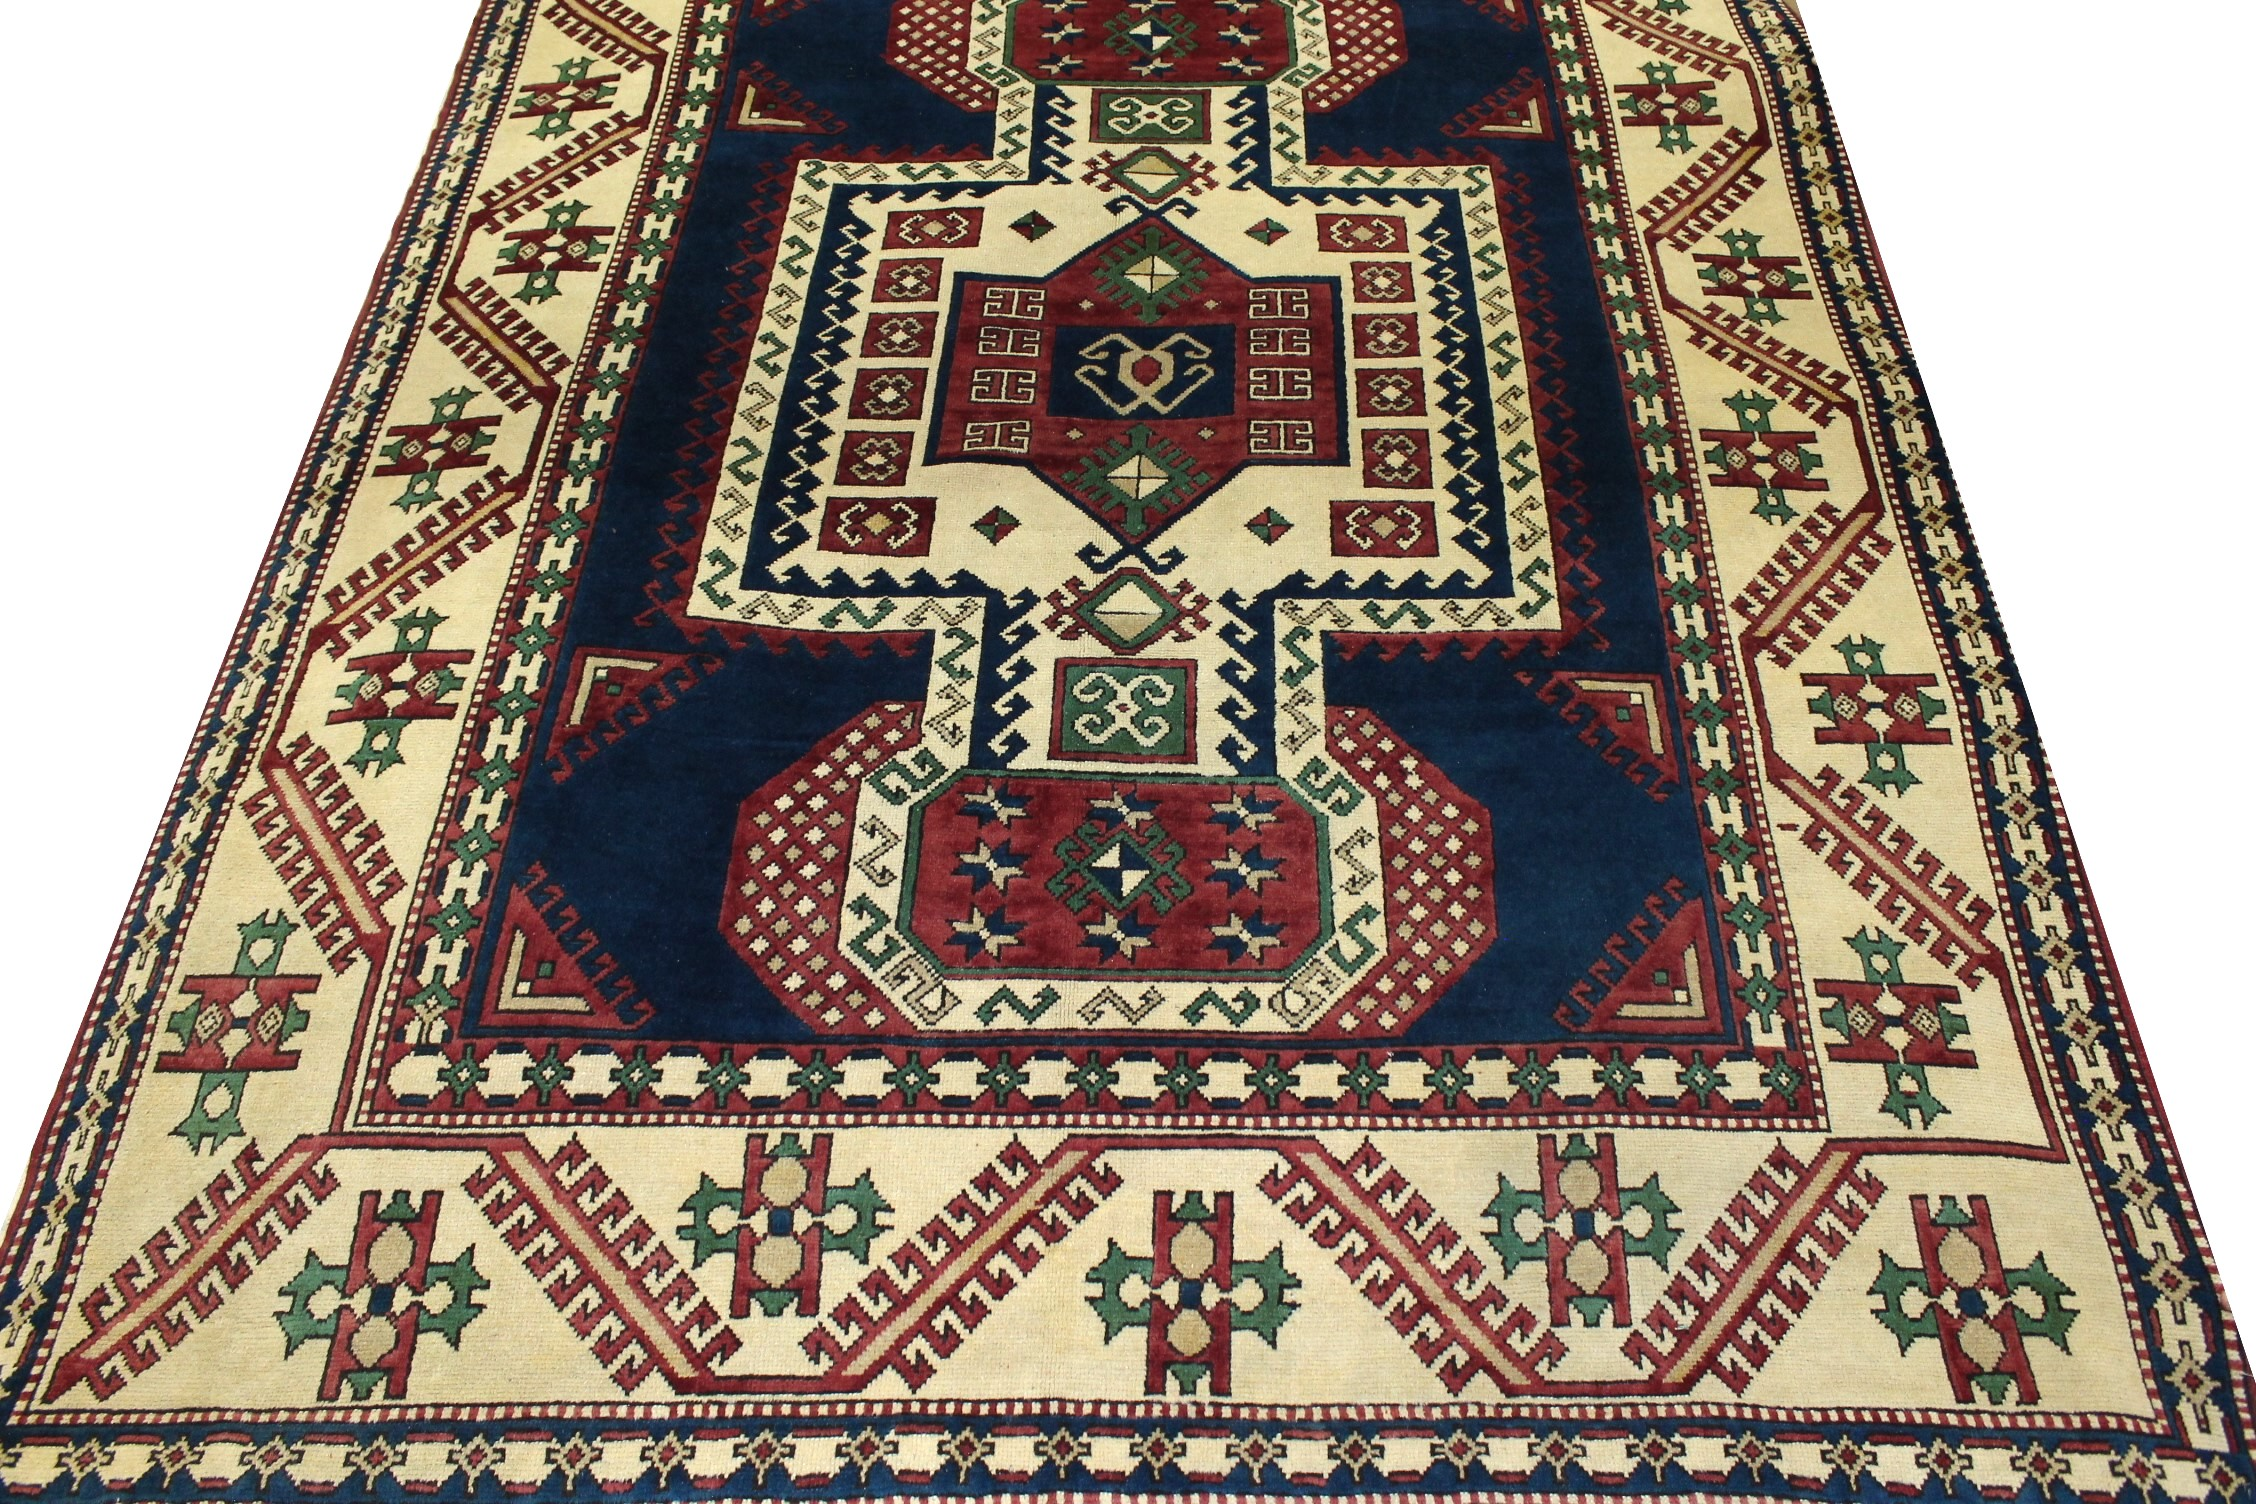 8x10 Oushak Hand Knotted Wool Area Rug - MR023452